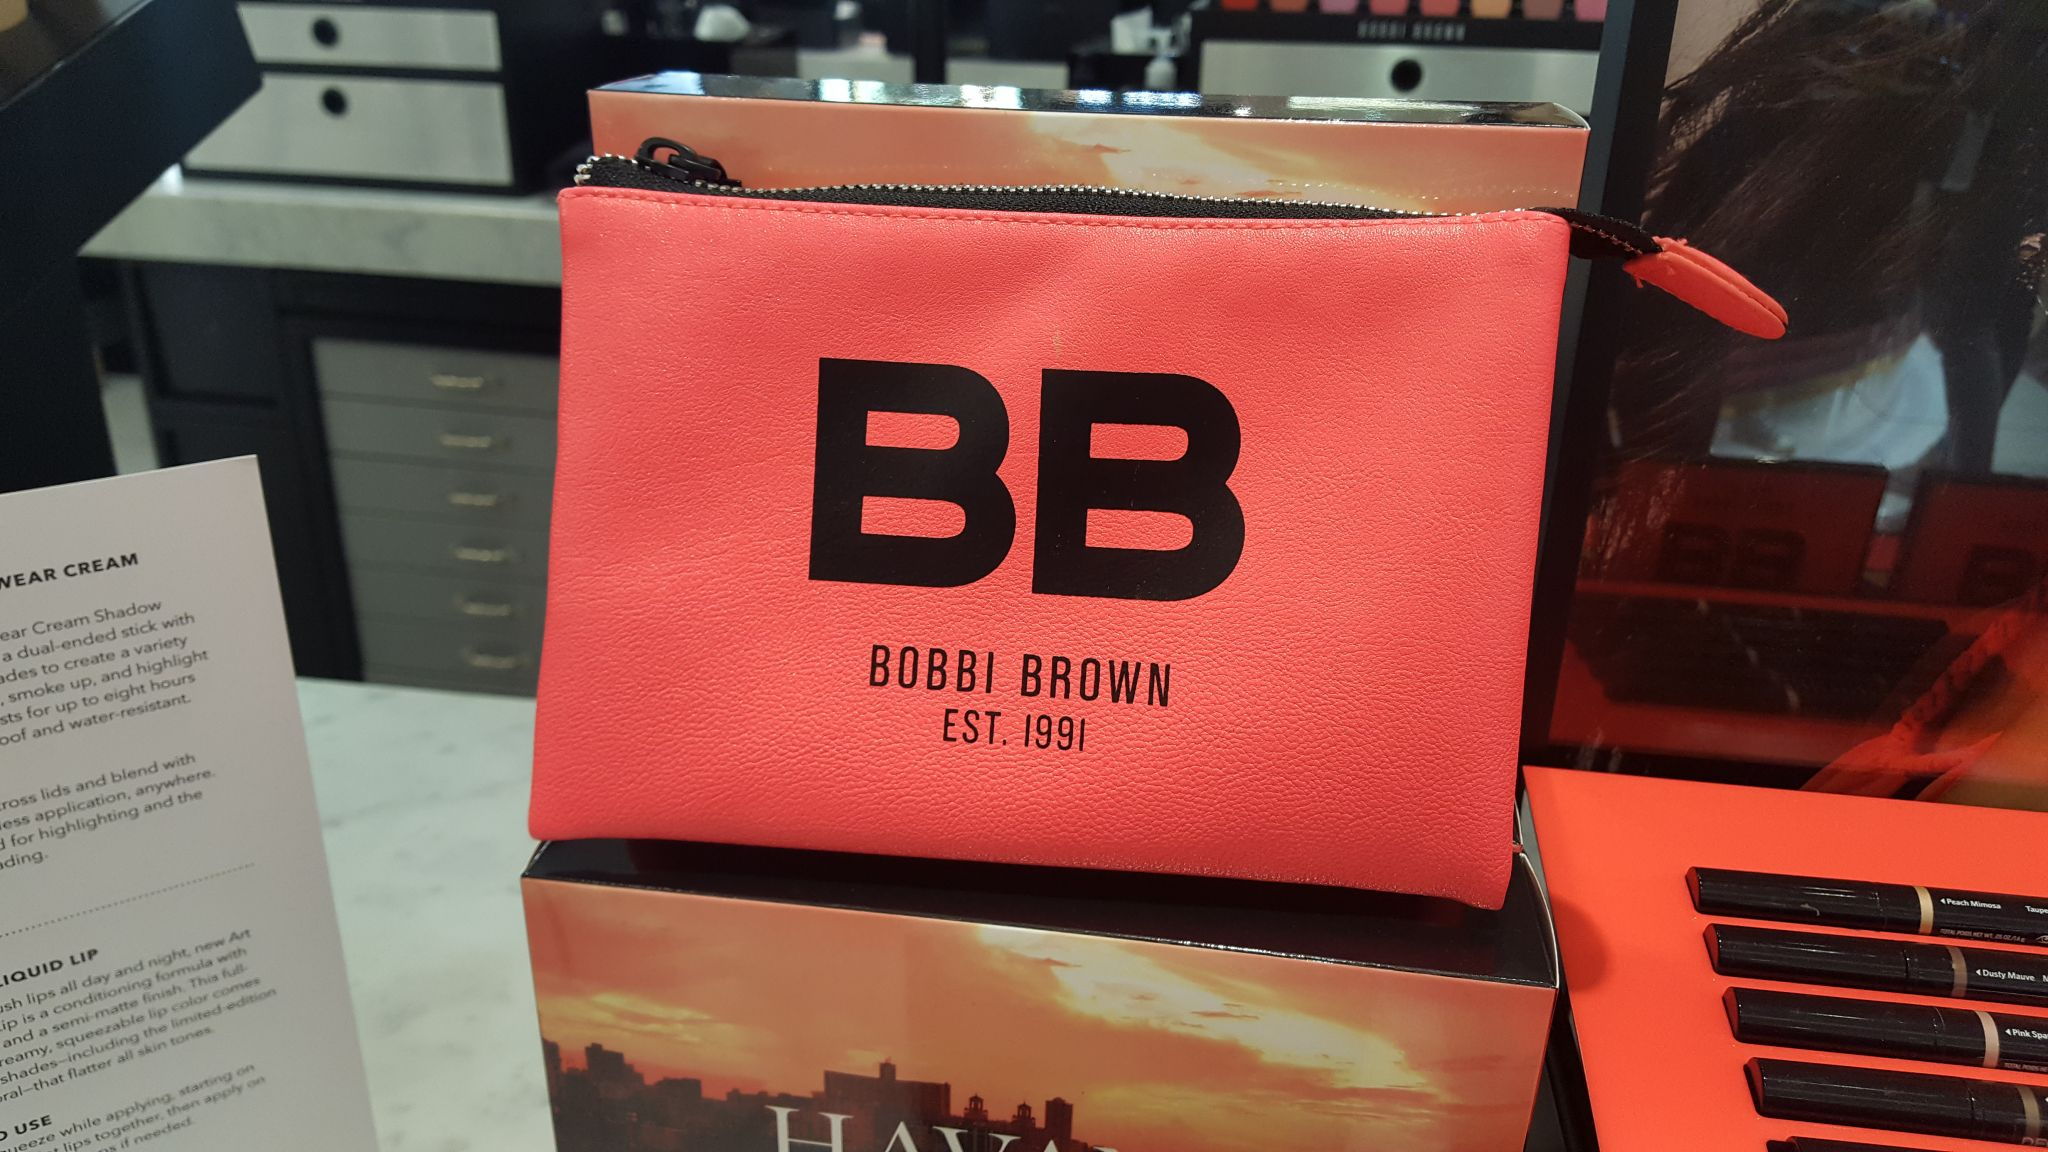 20170307 130309 1440x810 - Introducing Havana Brights make up collection by Bobbi Brown